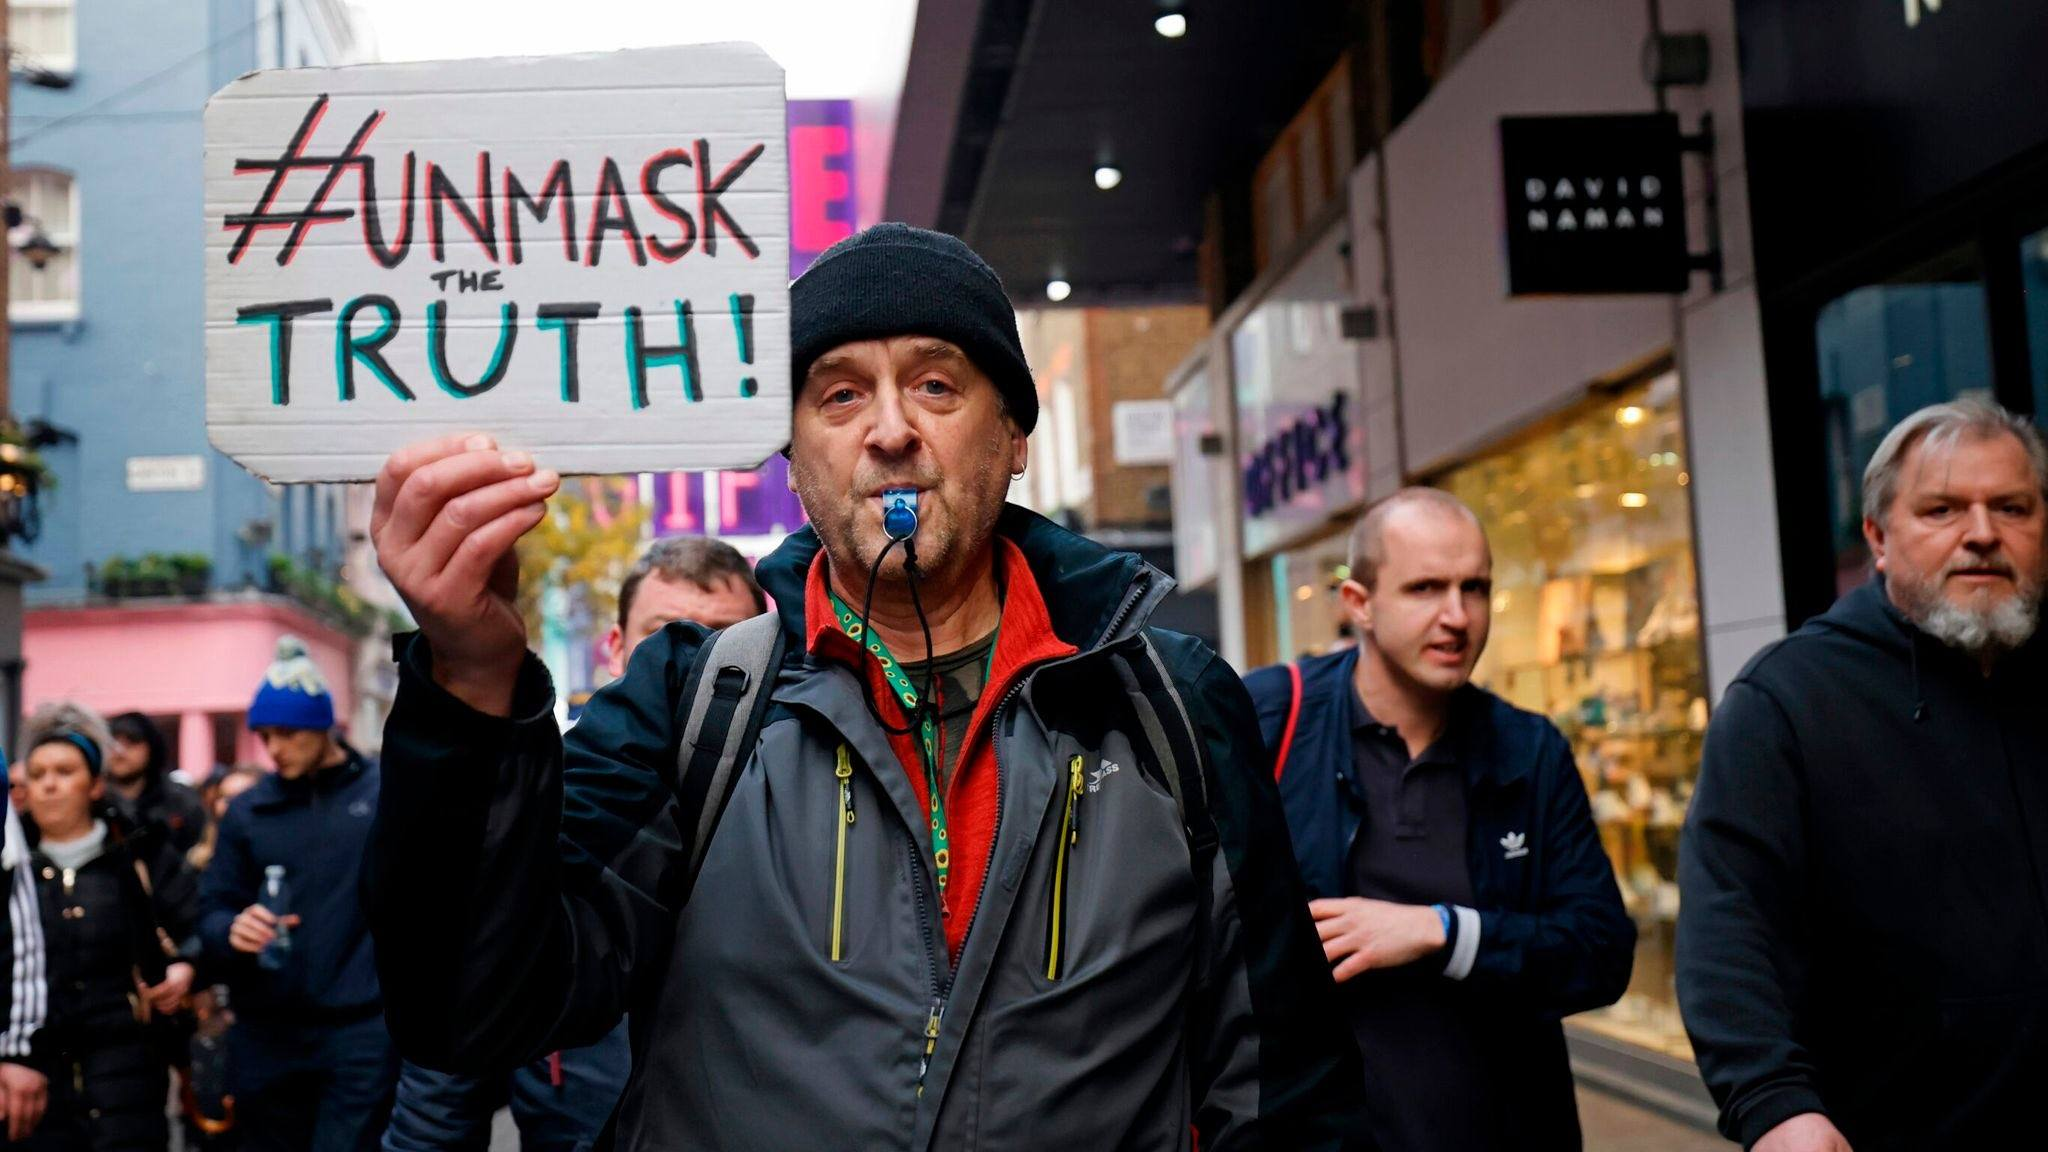 The CIA and The Corporate Media Cannot be Distinguished: The Censorship of the Alternative Media London-Protest-Unmask-the-Truth